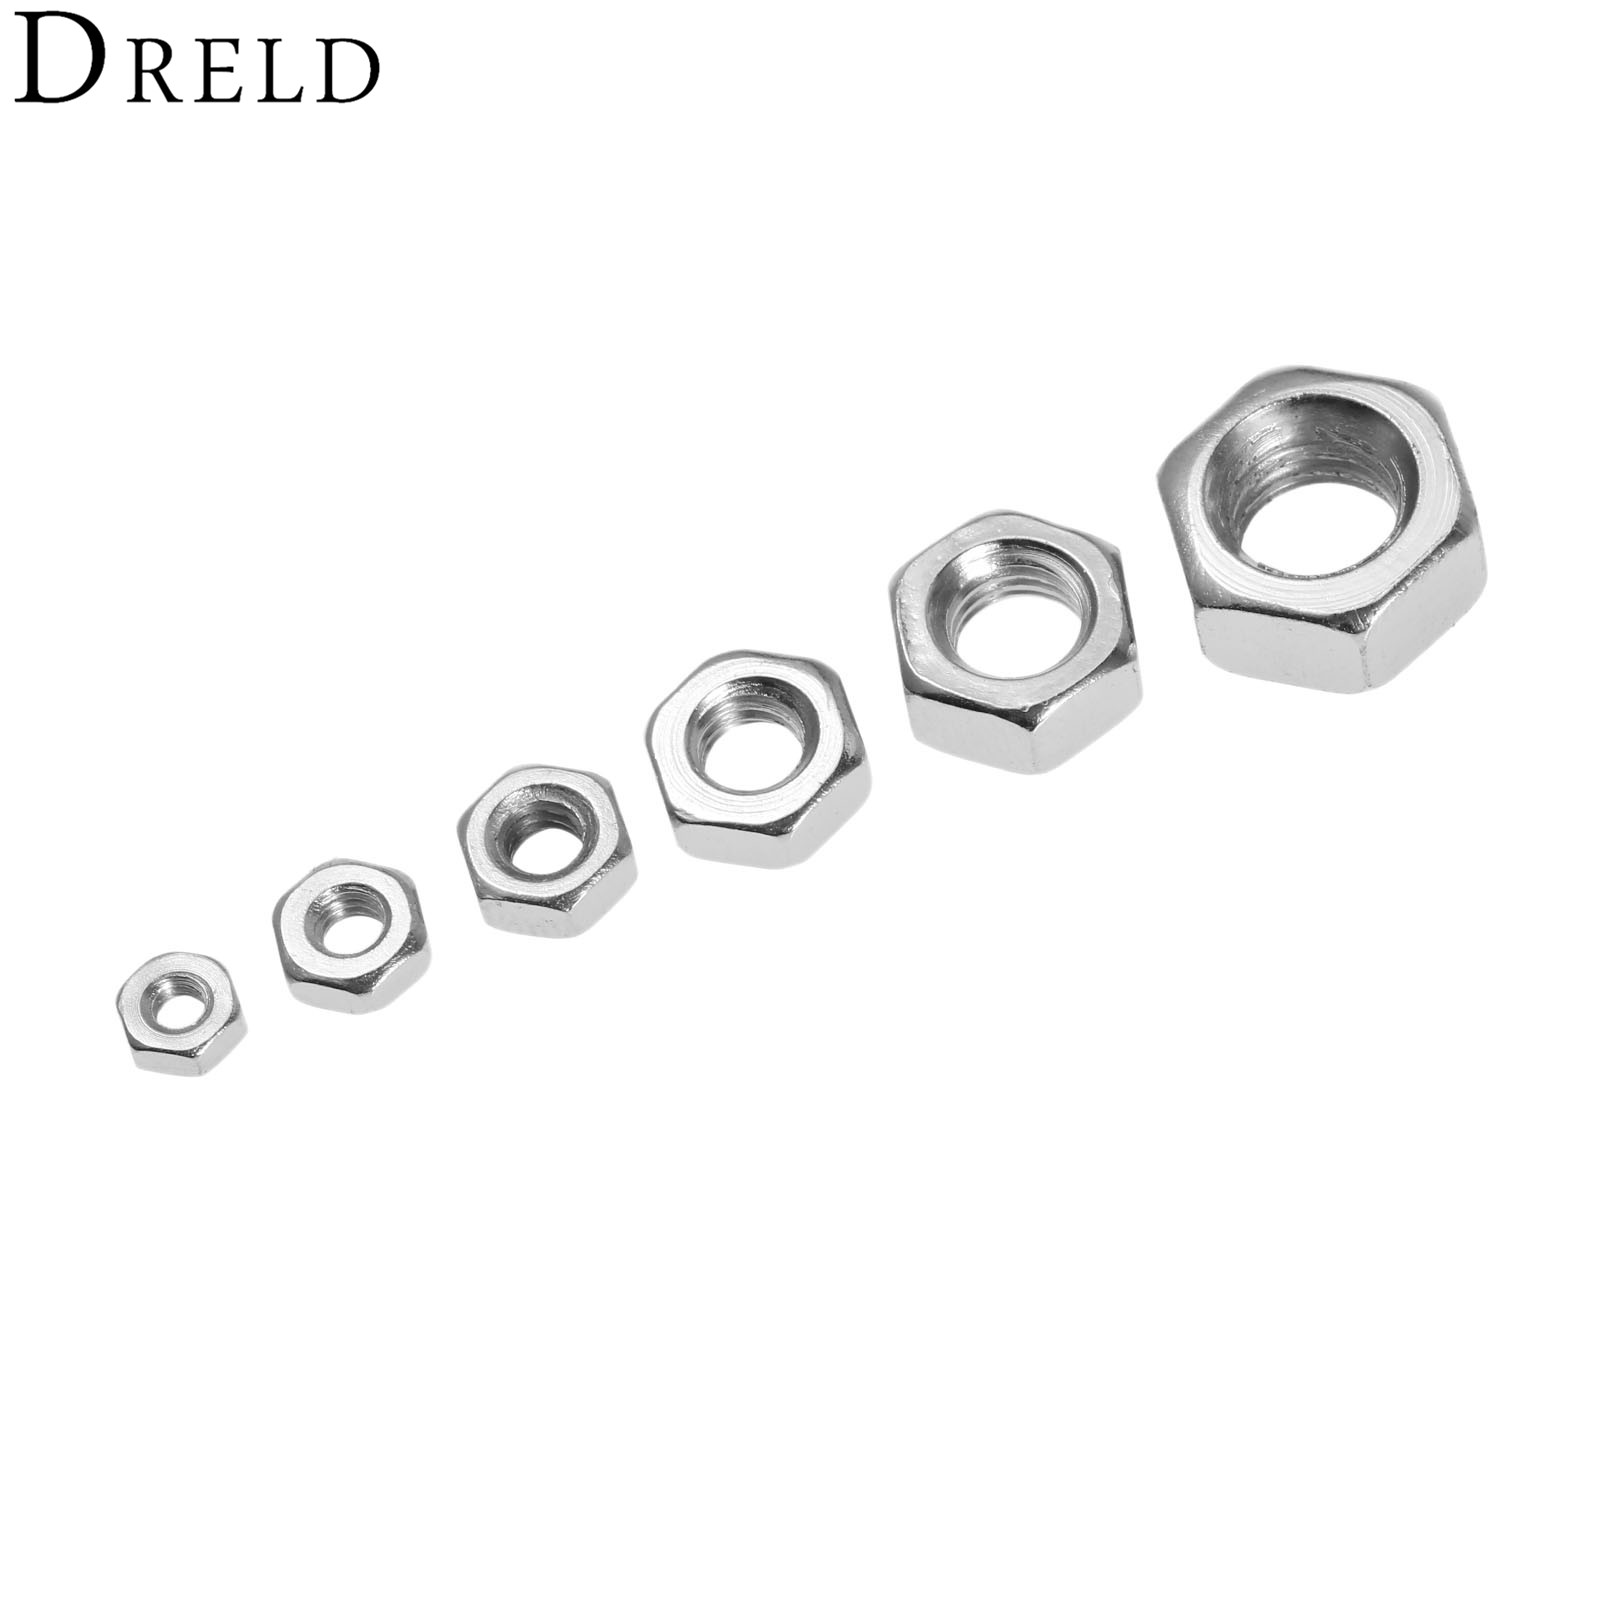 DRELD 50Pcs/lot M2/M2.5/M3/M4/M5/M6 Nuts Carbon Steel Metric Thread Hex Nuts Silver Hexagon Nut For Screws Bolts Fasteners free shipping m14 45 carbon bolt hardware nuts and bolts 2 pcs lot